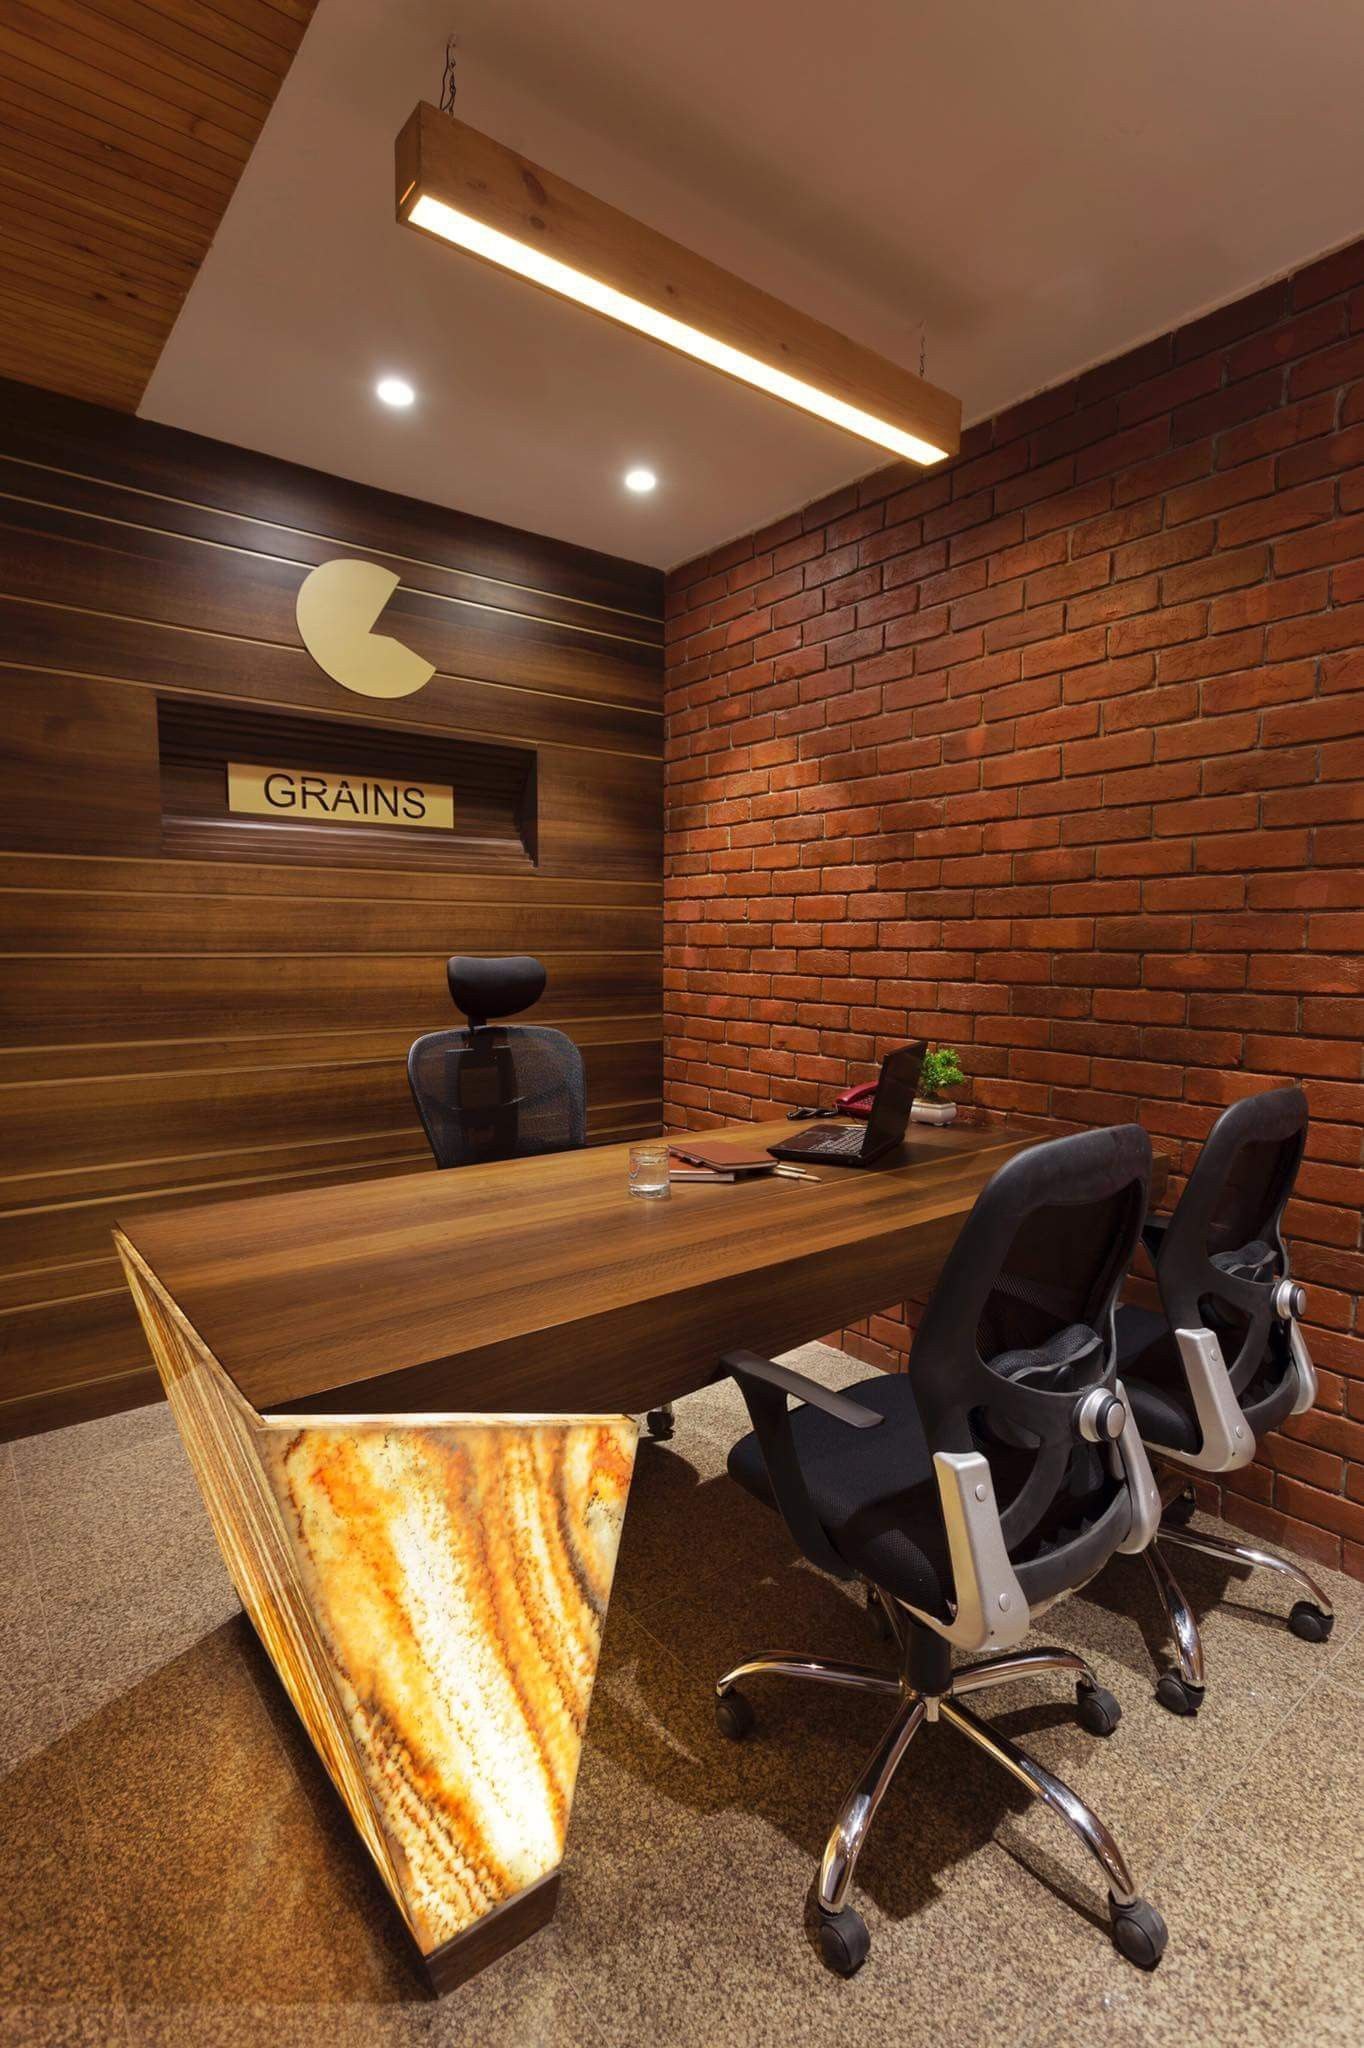 Top 10 Stunning Home Office Design Office Cabin Design Office Table Design Office Interiors